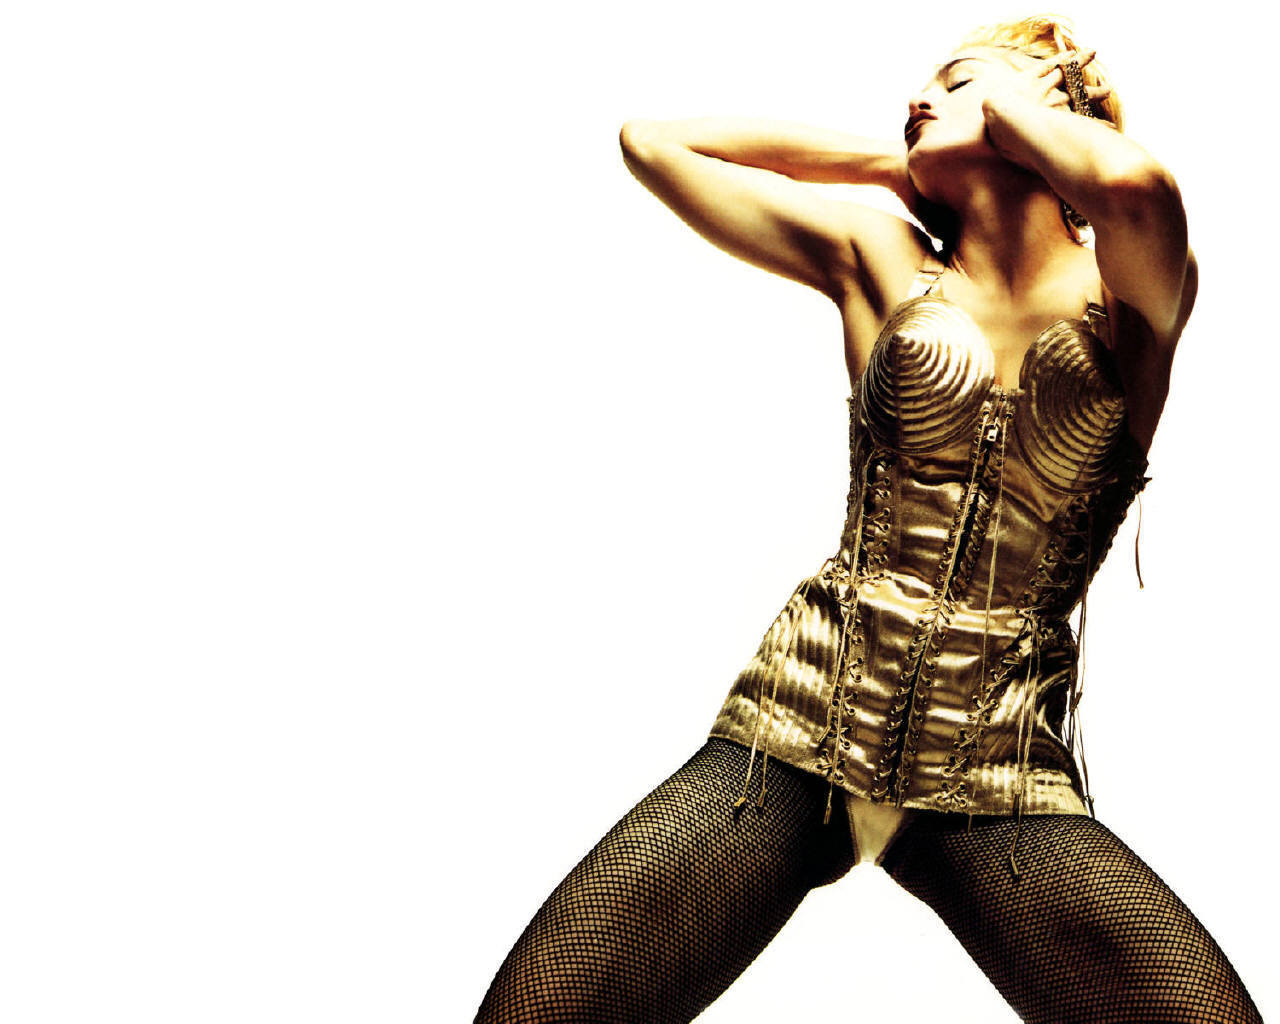 MADONNA - MADONNA Wallpaper (1262433) - Fanpop